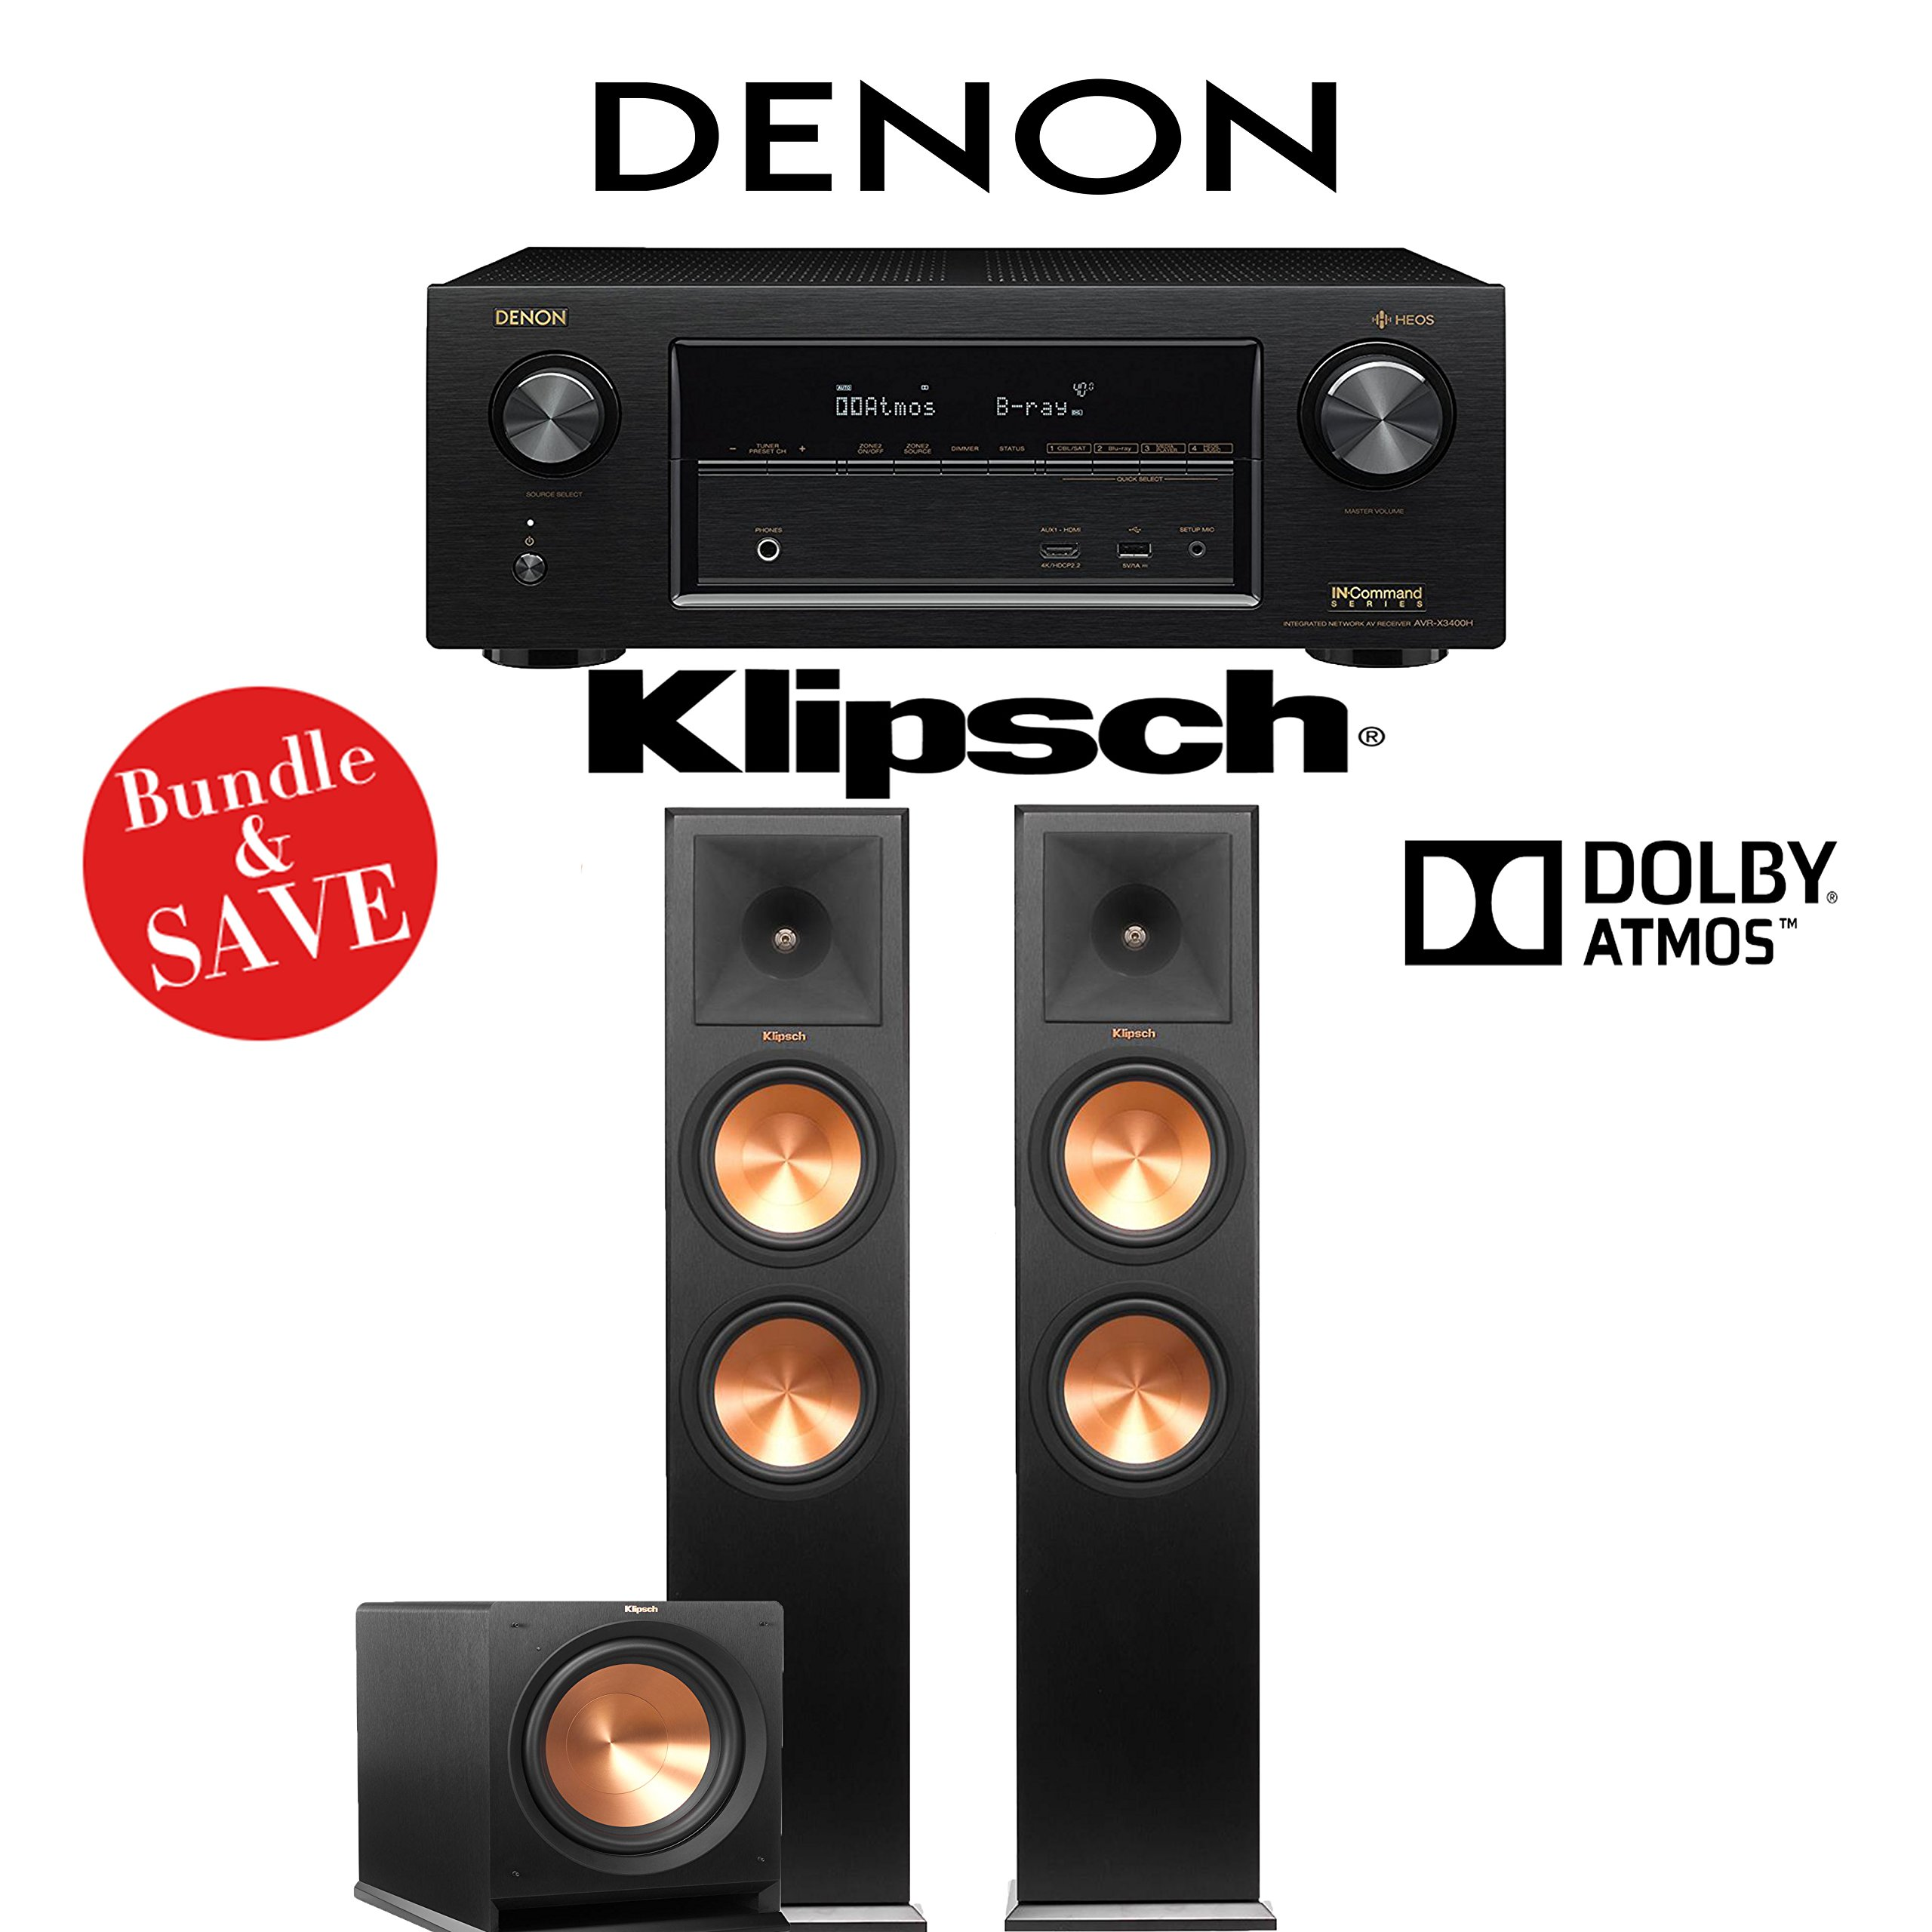 Denon AVR-X3400H 7.2-Channel Full 4K Ultra HD Network AV Receiver + Klipsch RP-280FA (Black Vinyl) + Klipsch R-112SW - 2.1.2-Ch Dolby Atmos Home Theater Package by Klipsch